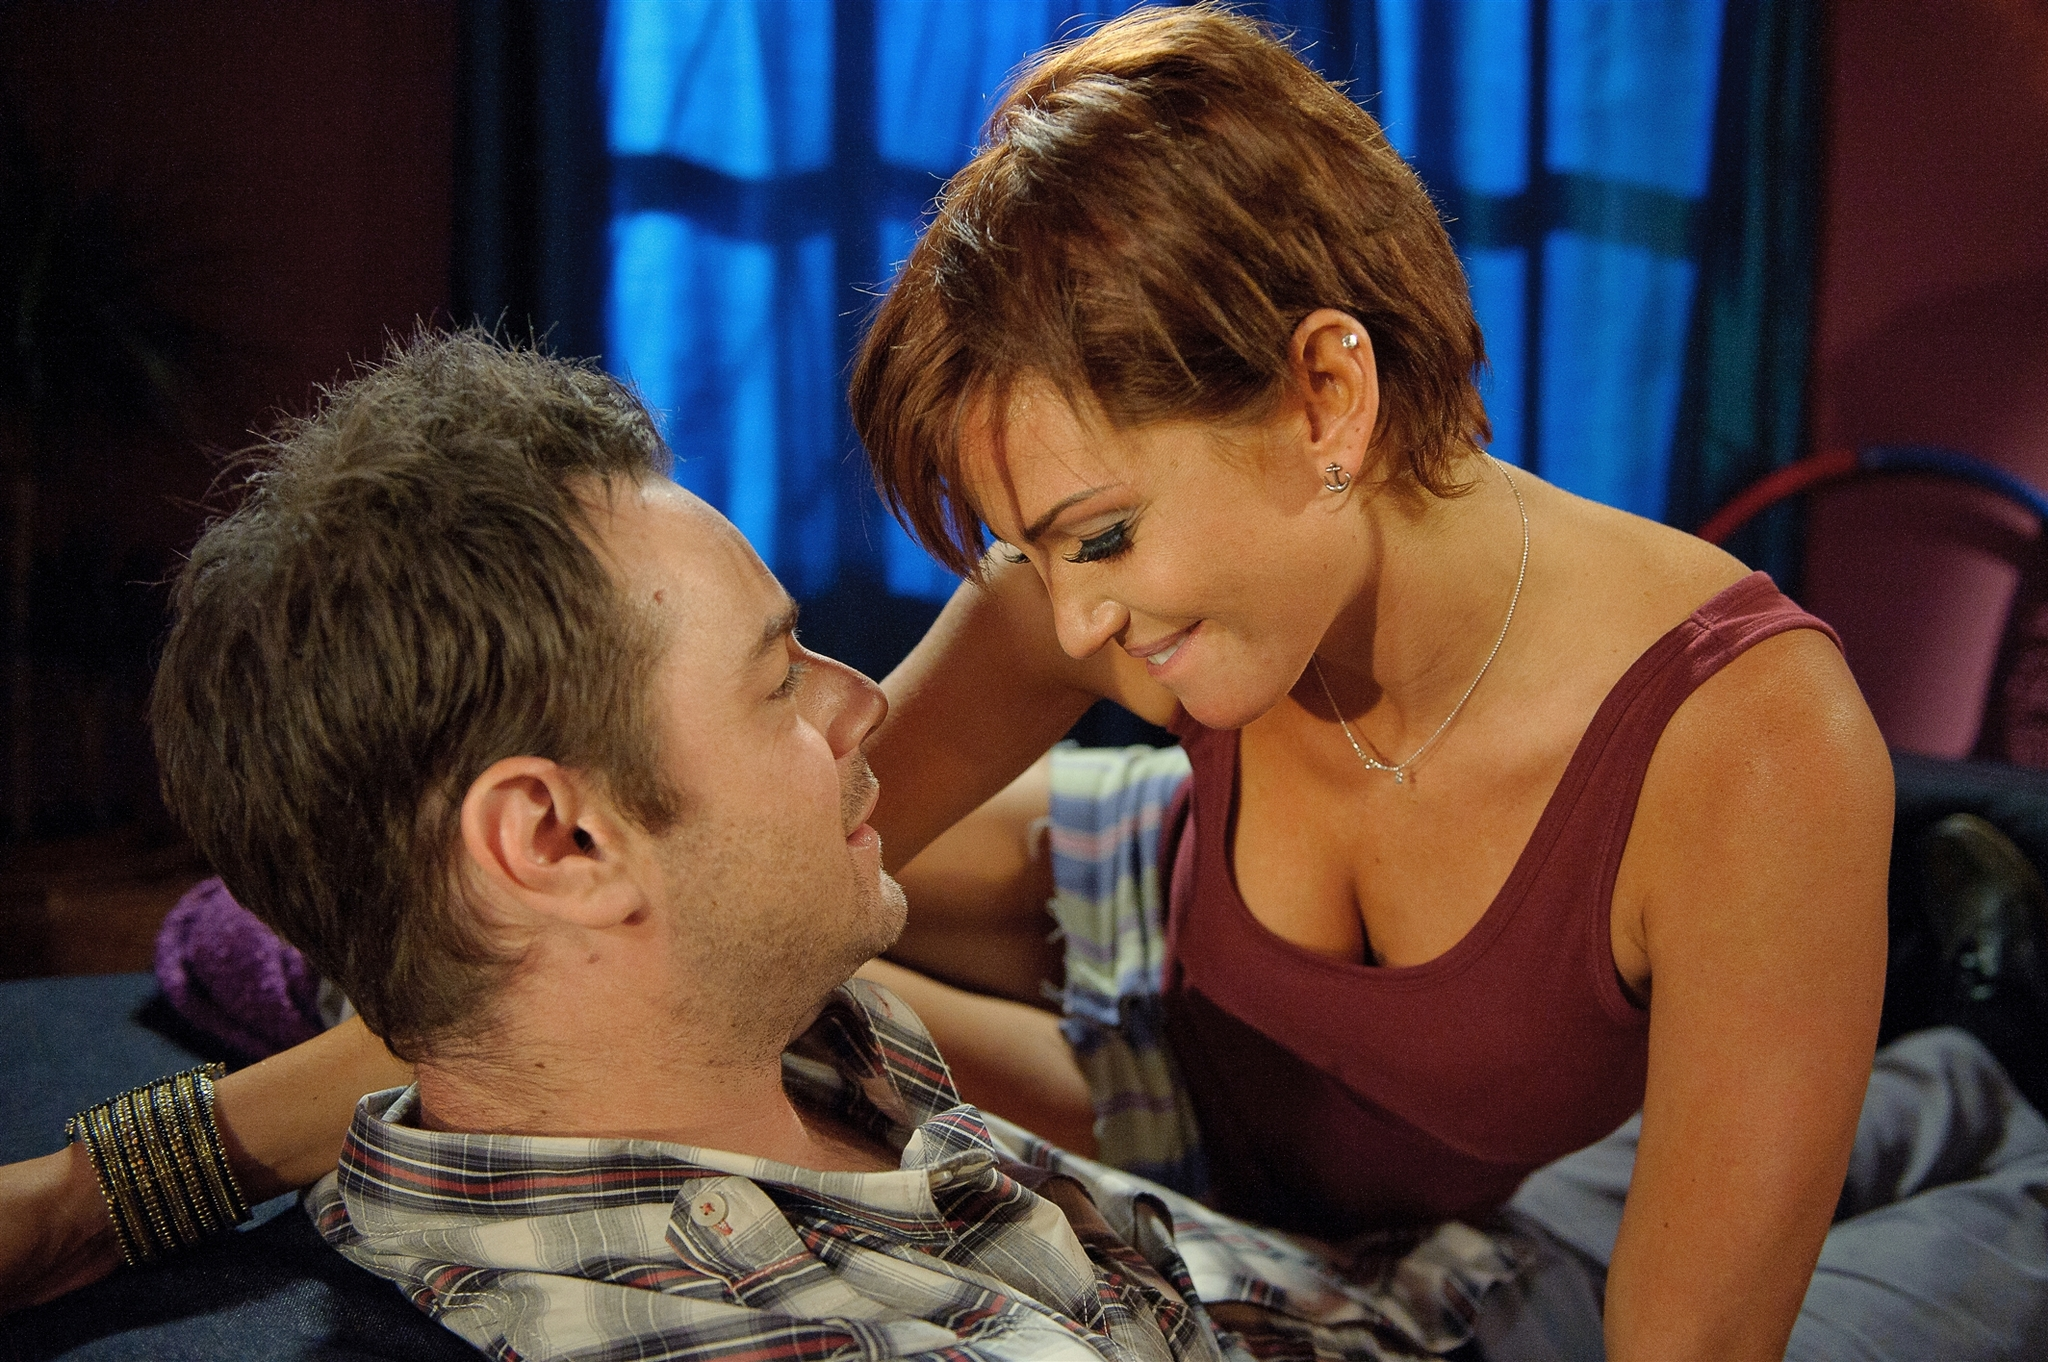 Danny Dyer and Sarah Harding in Run for Your Wife (2012)